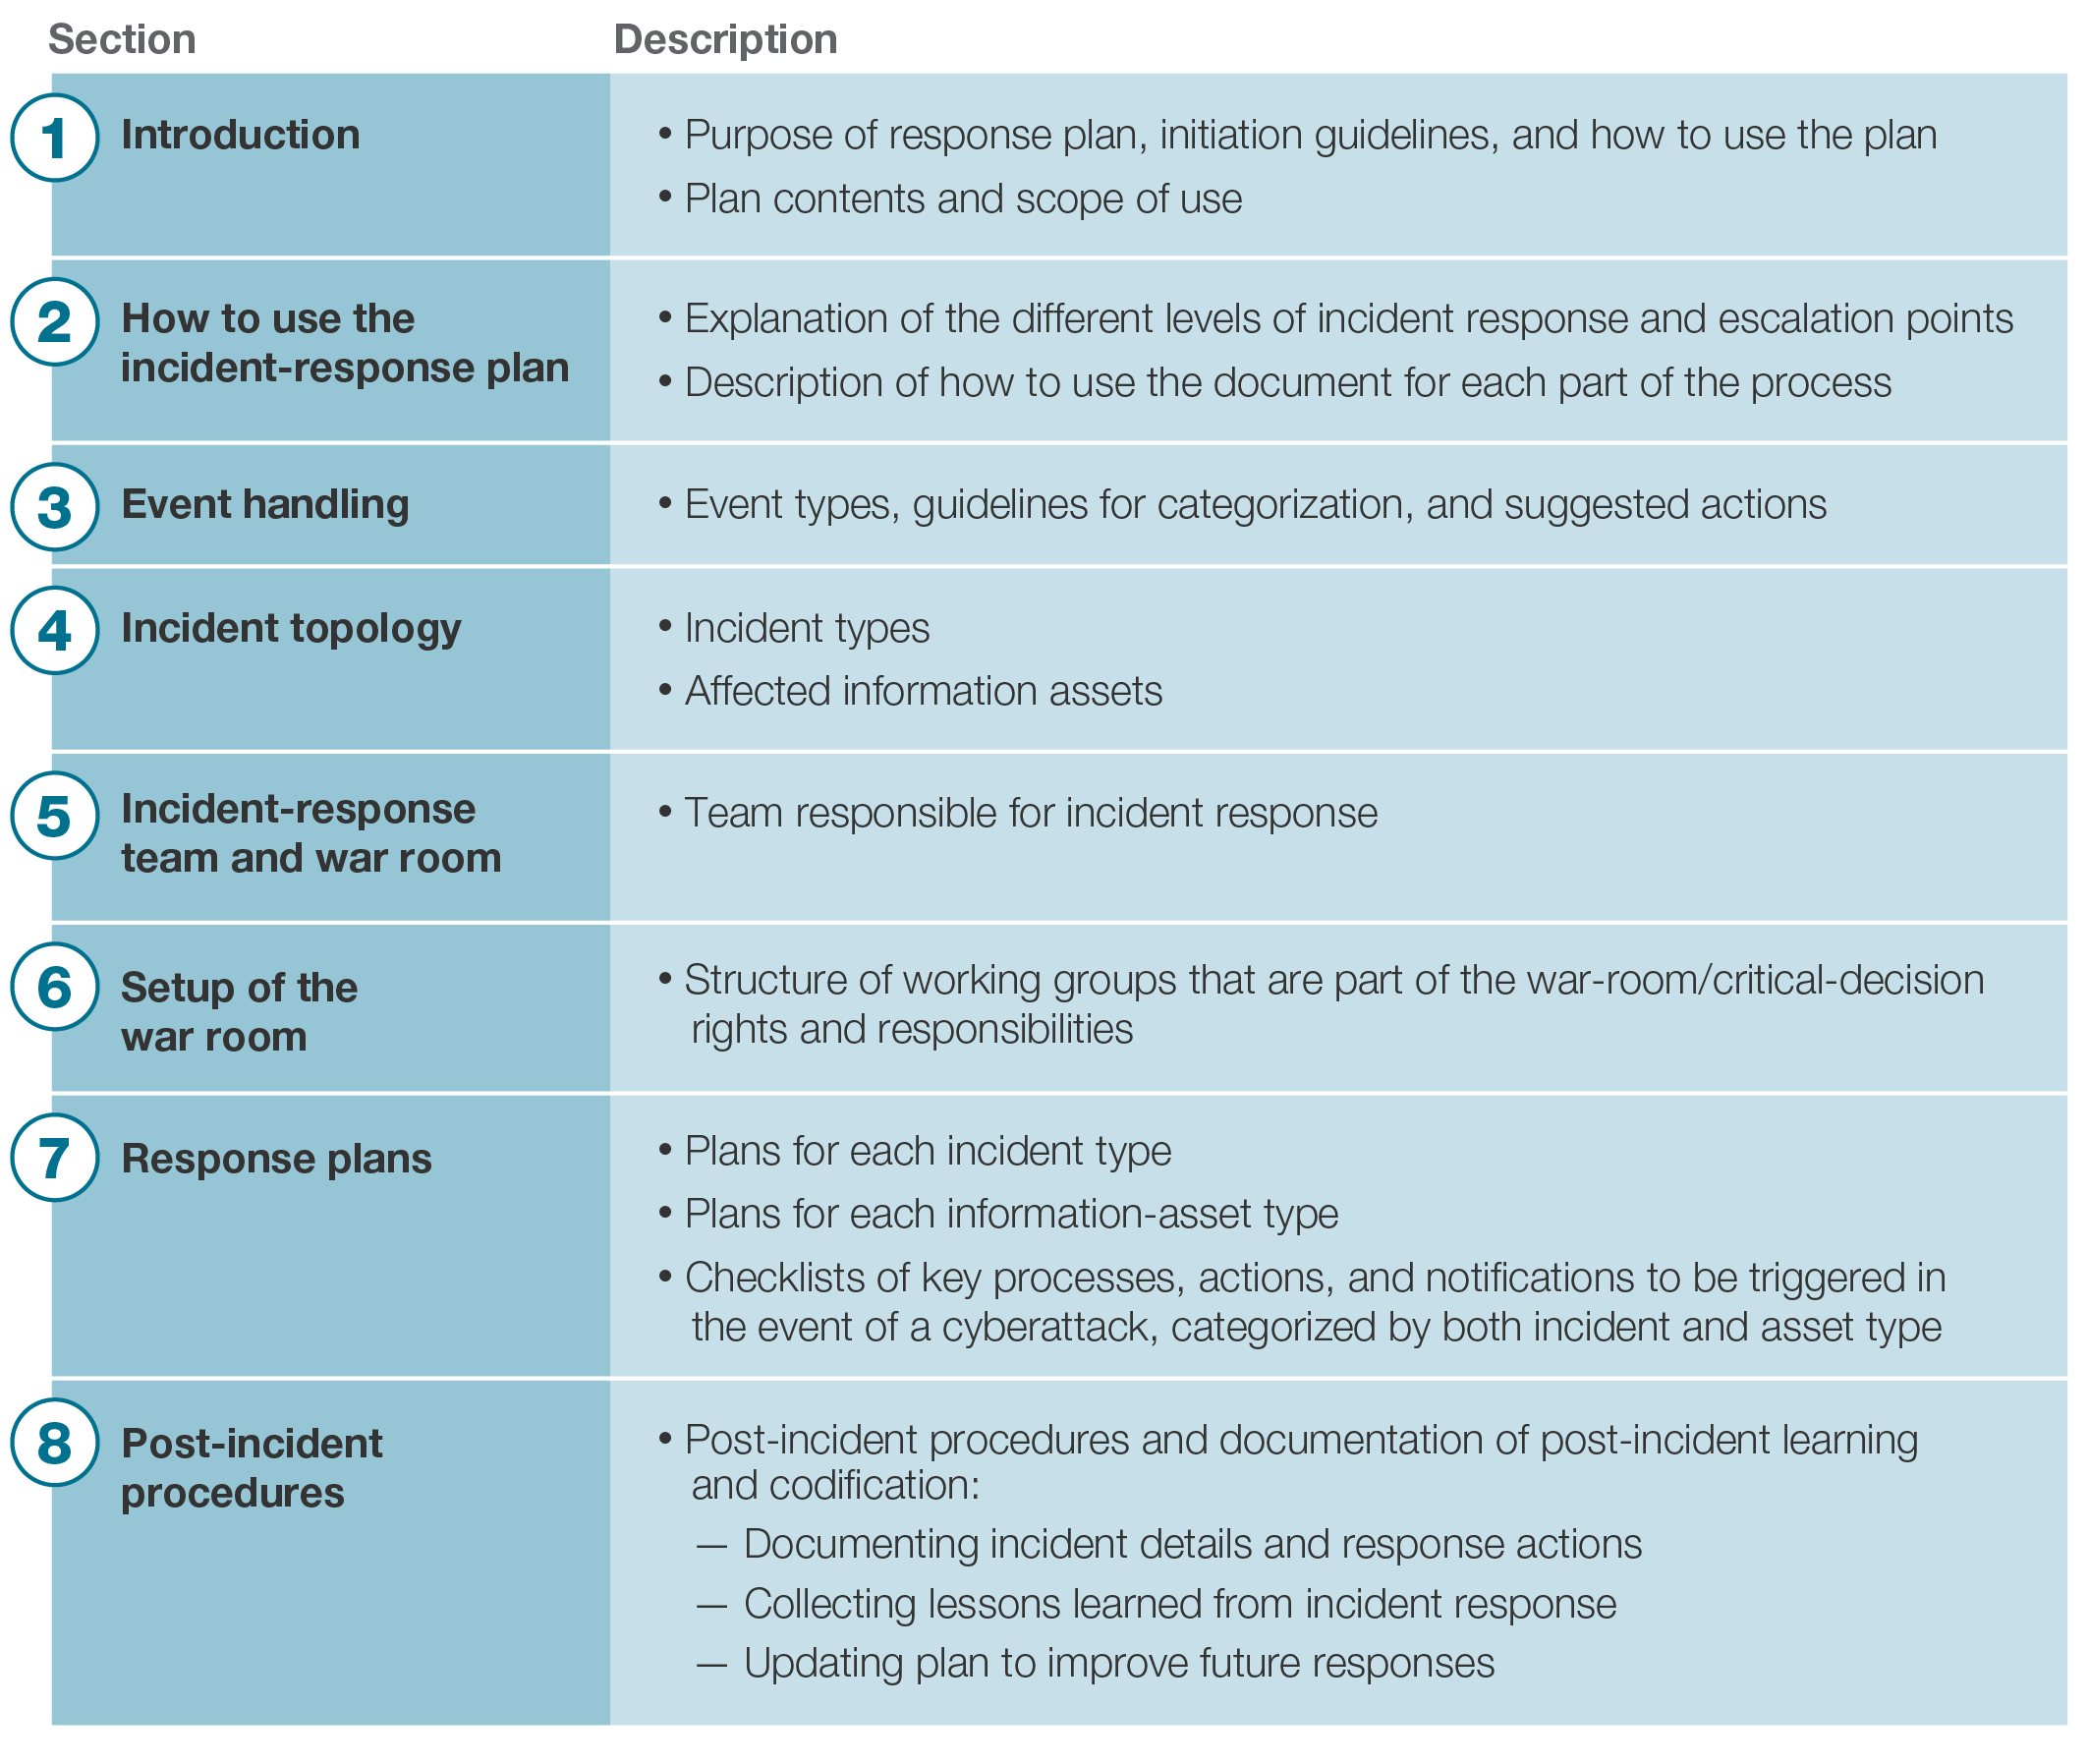 How good is your cyberincident-response plan? | McKinsey & Company